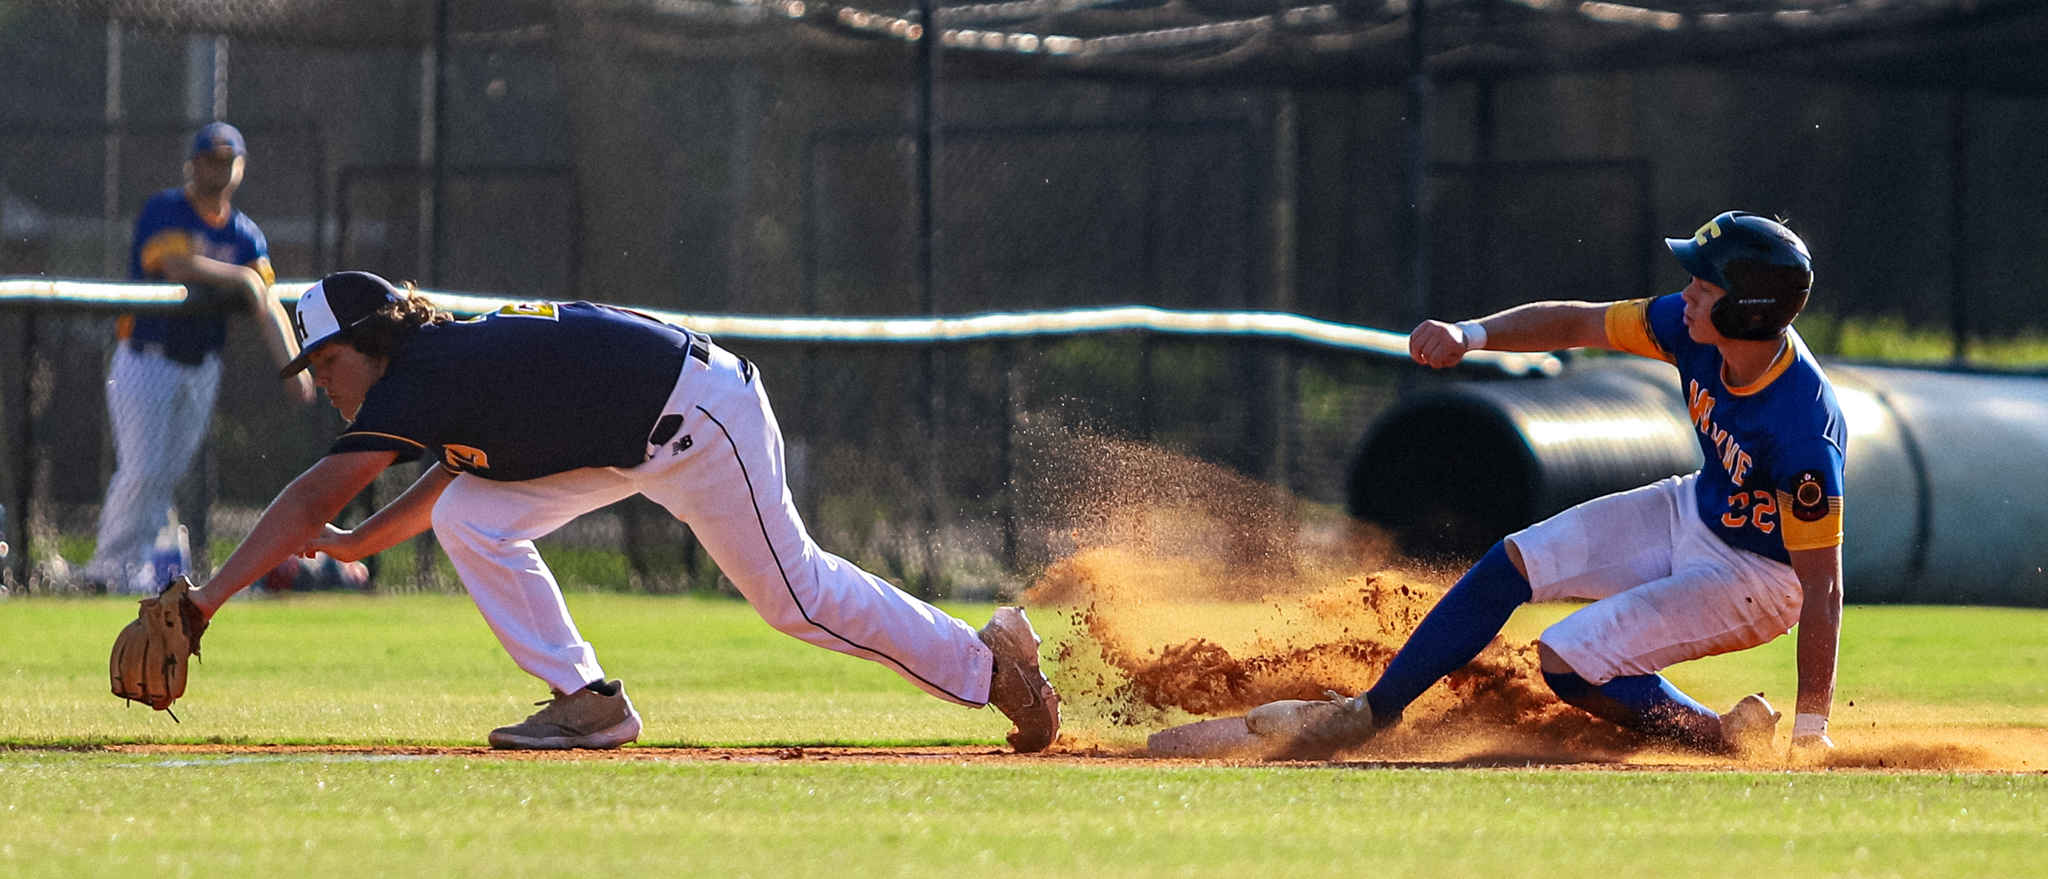 Baseball: Wayne County Gets First Win Against Hamlet County Post 49 (PHOTO GALLERY)